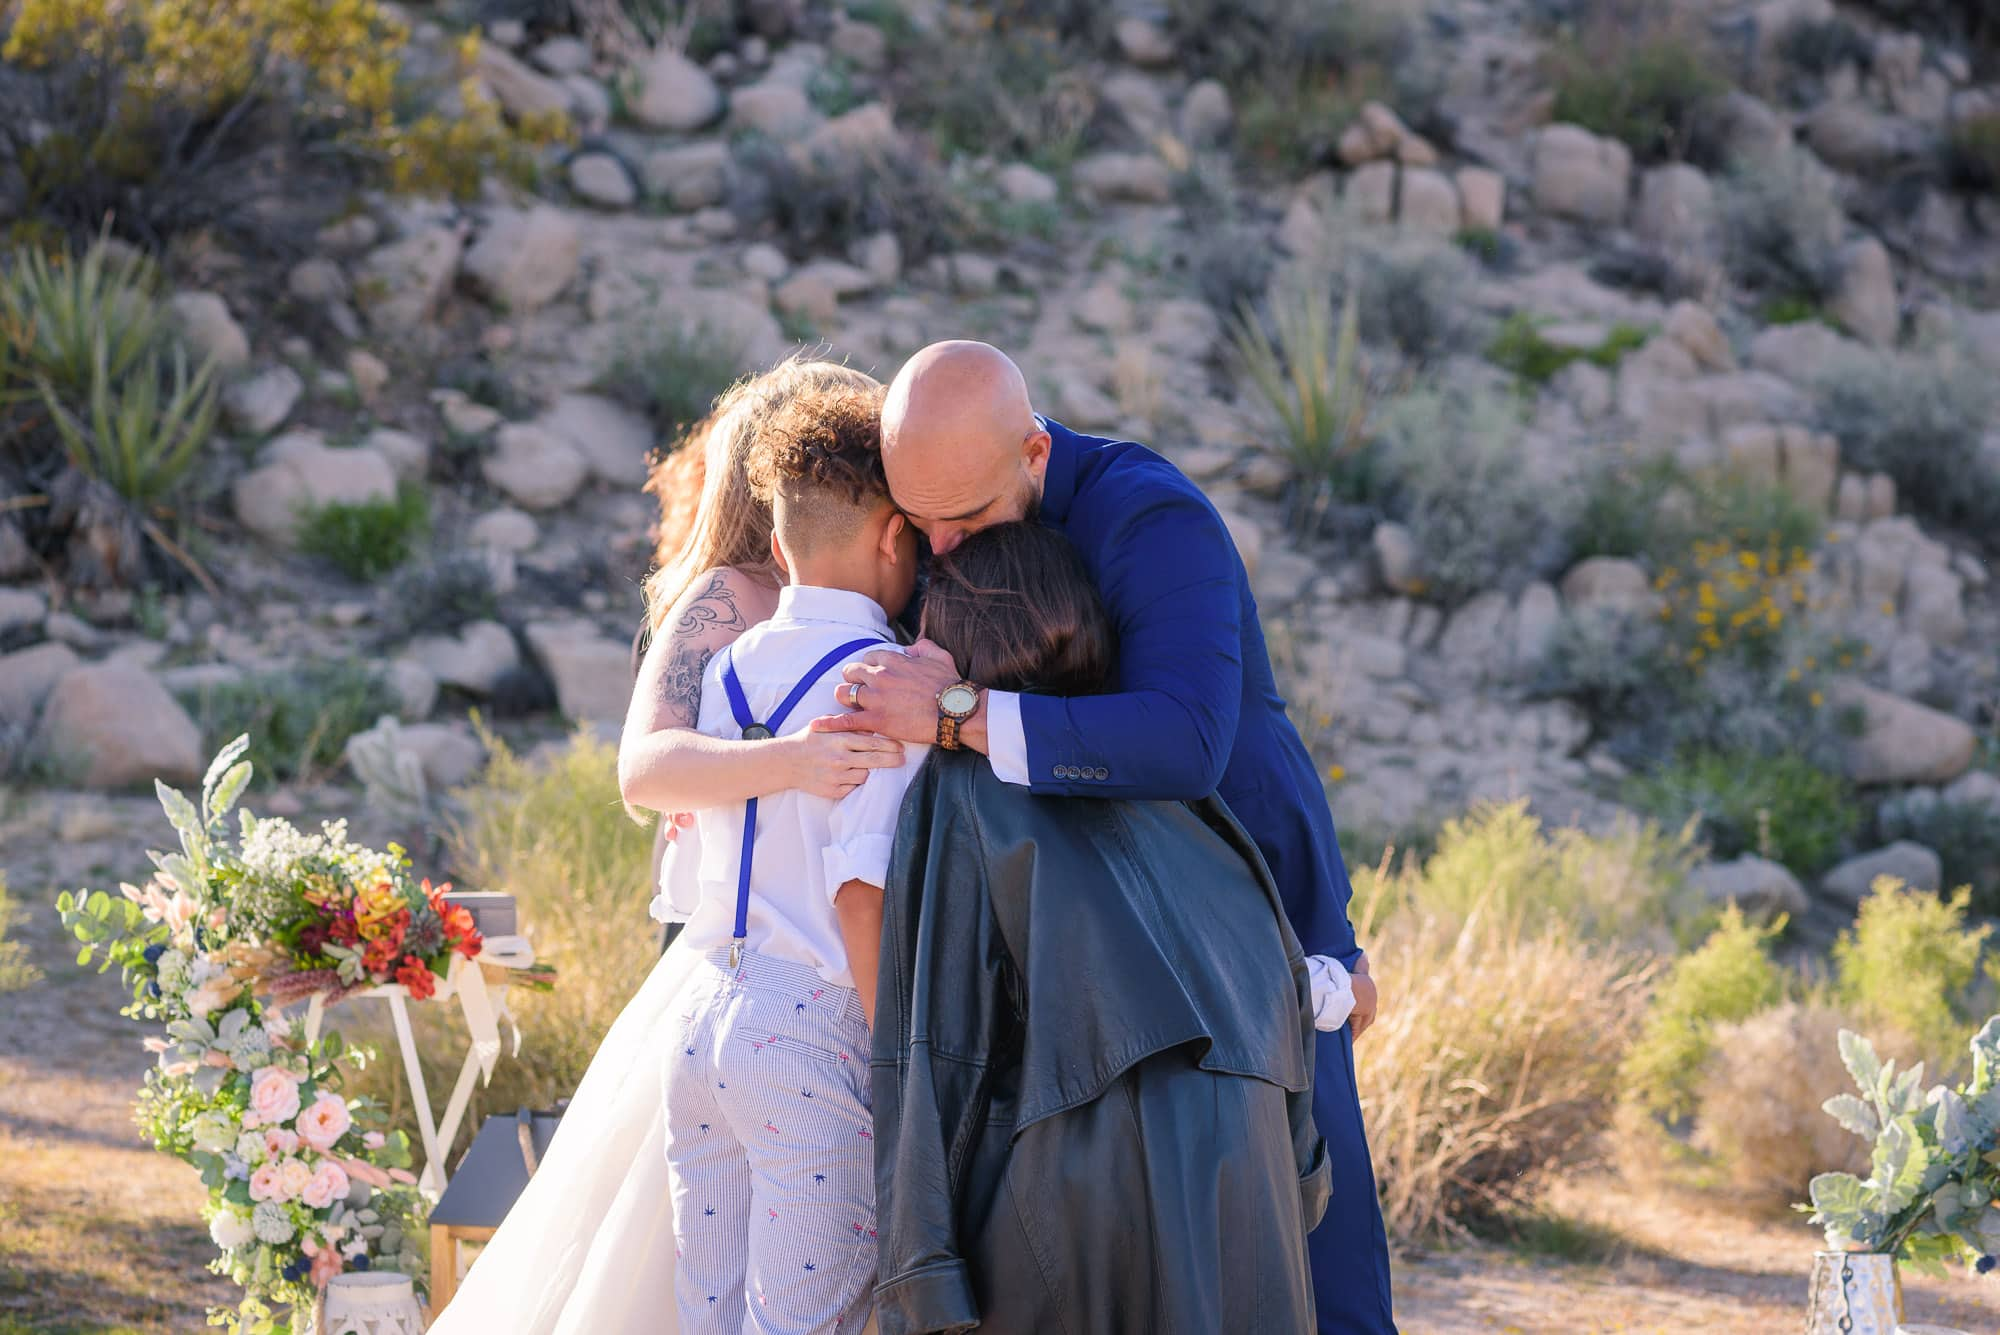 024_Alan_and_Heidi_Joshua_Tree_Spring_Elopement